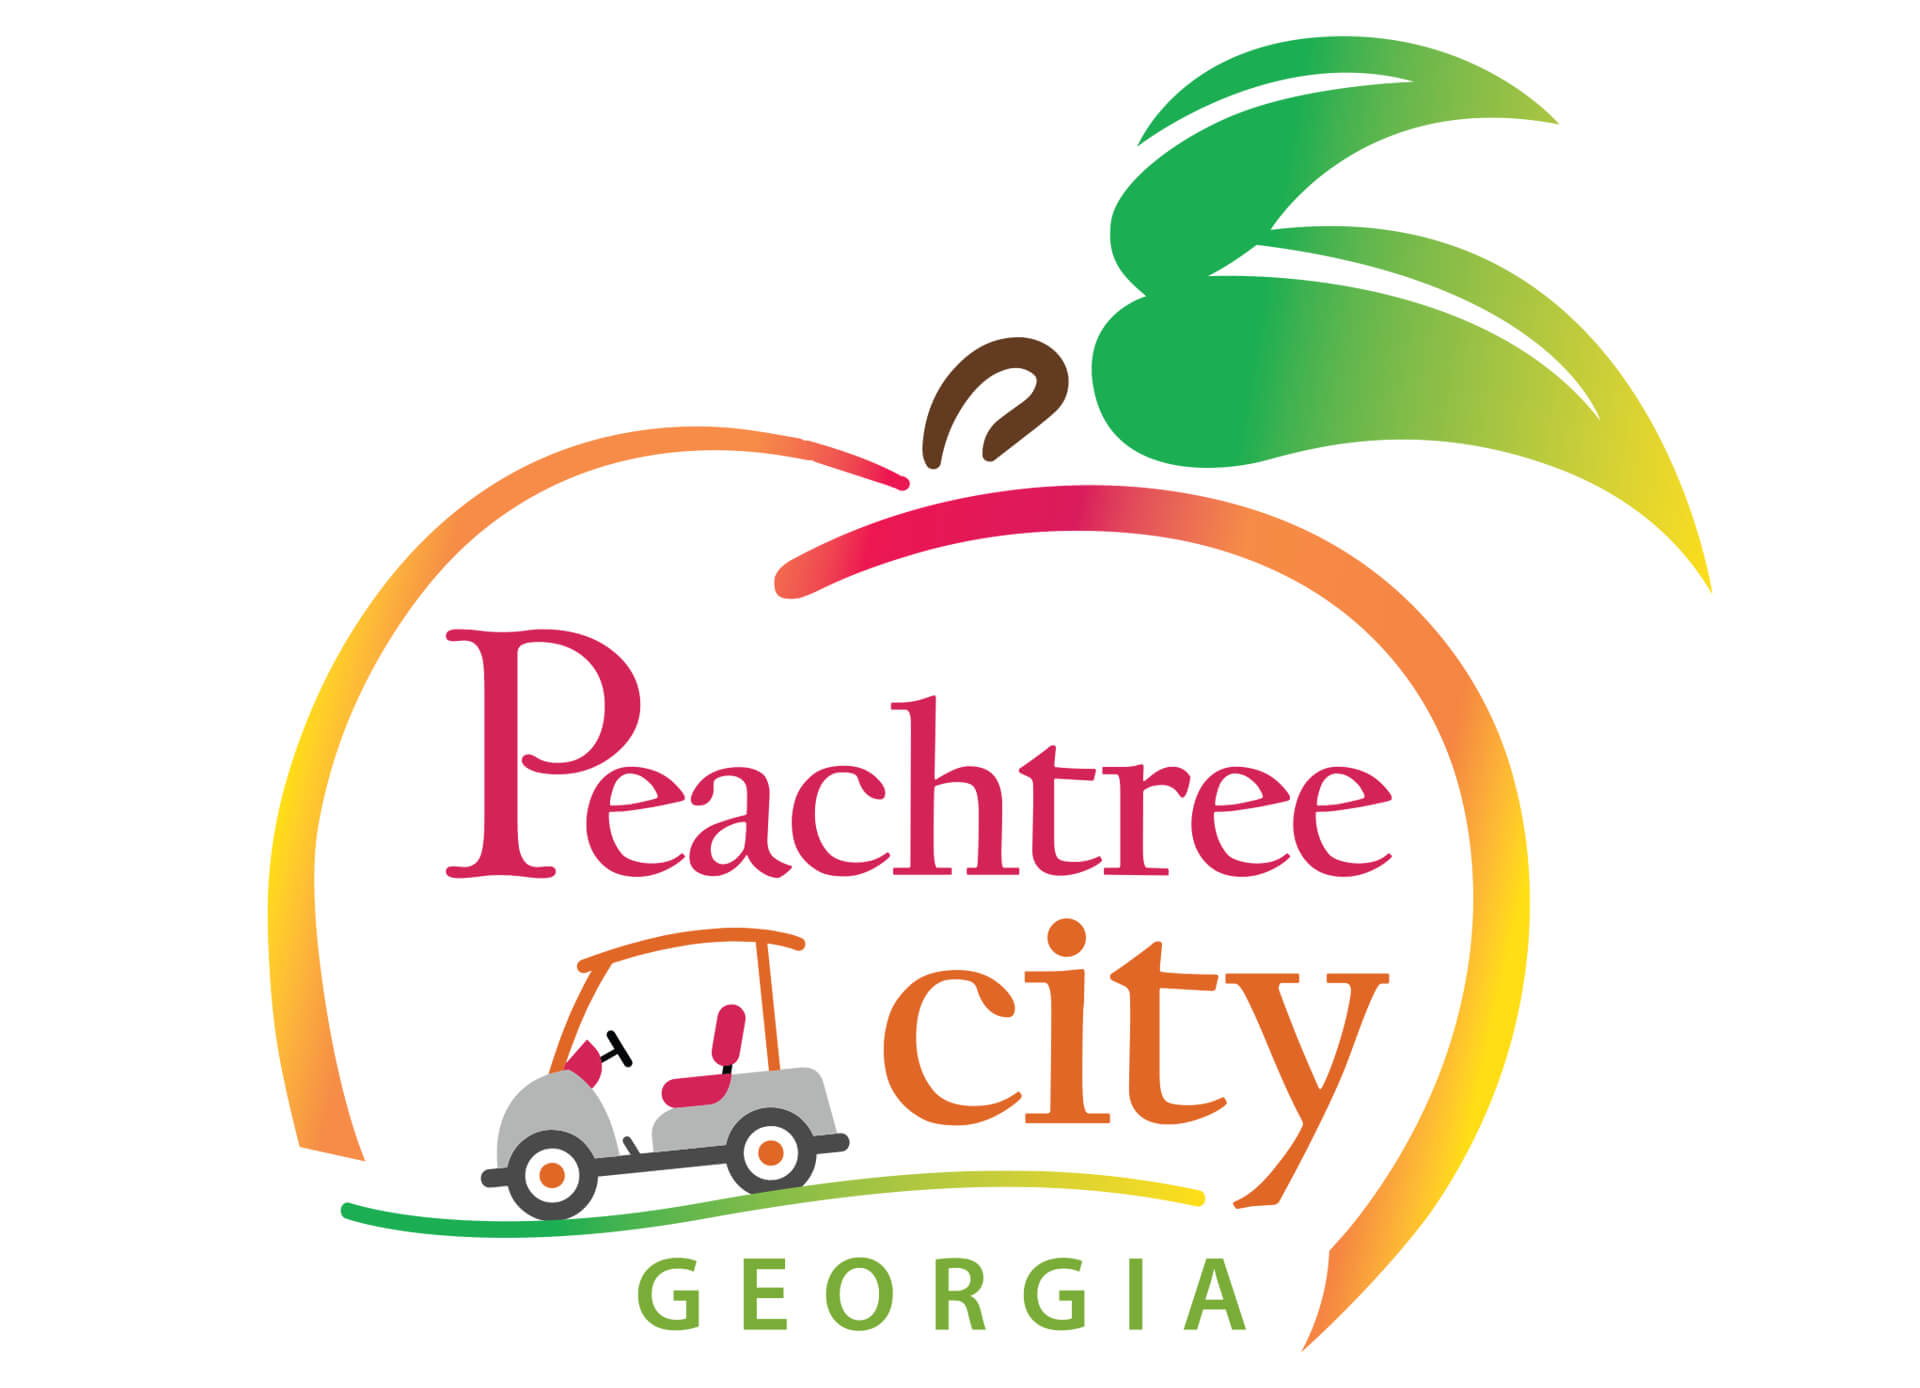 Peachtree City